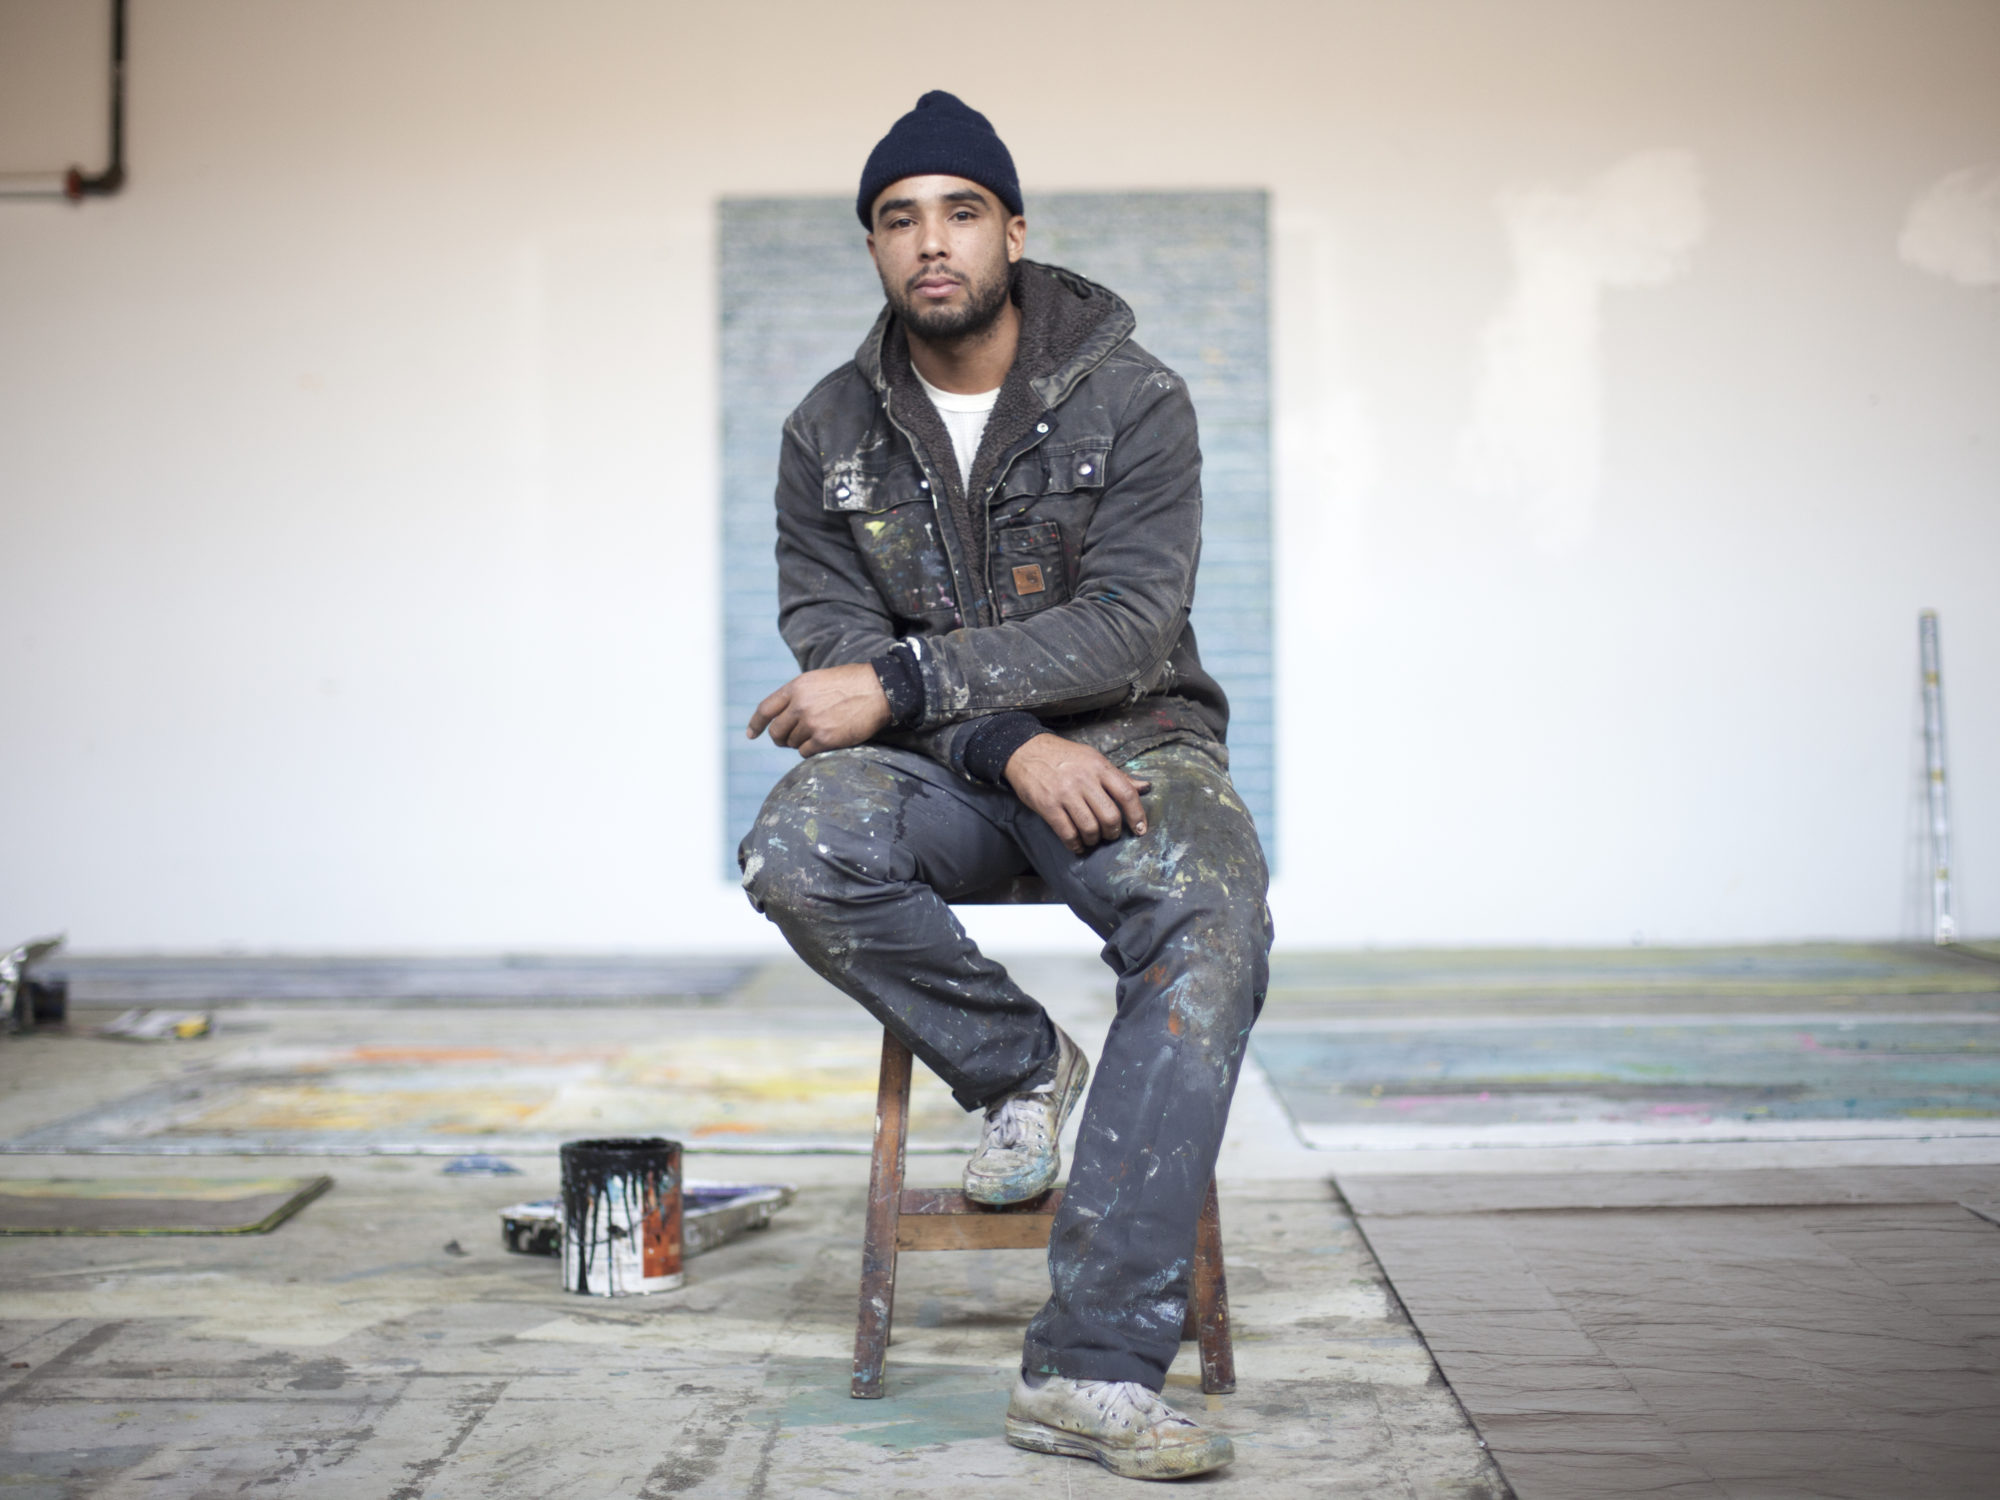 The artist in a paint-splattered zip up sweatshirt and dark pants sits on a wooden stool in his studio.